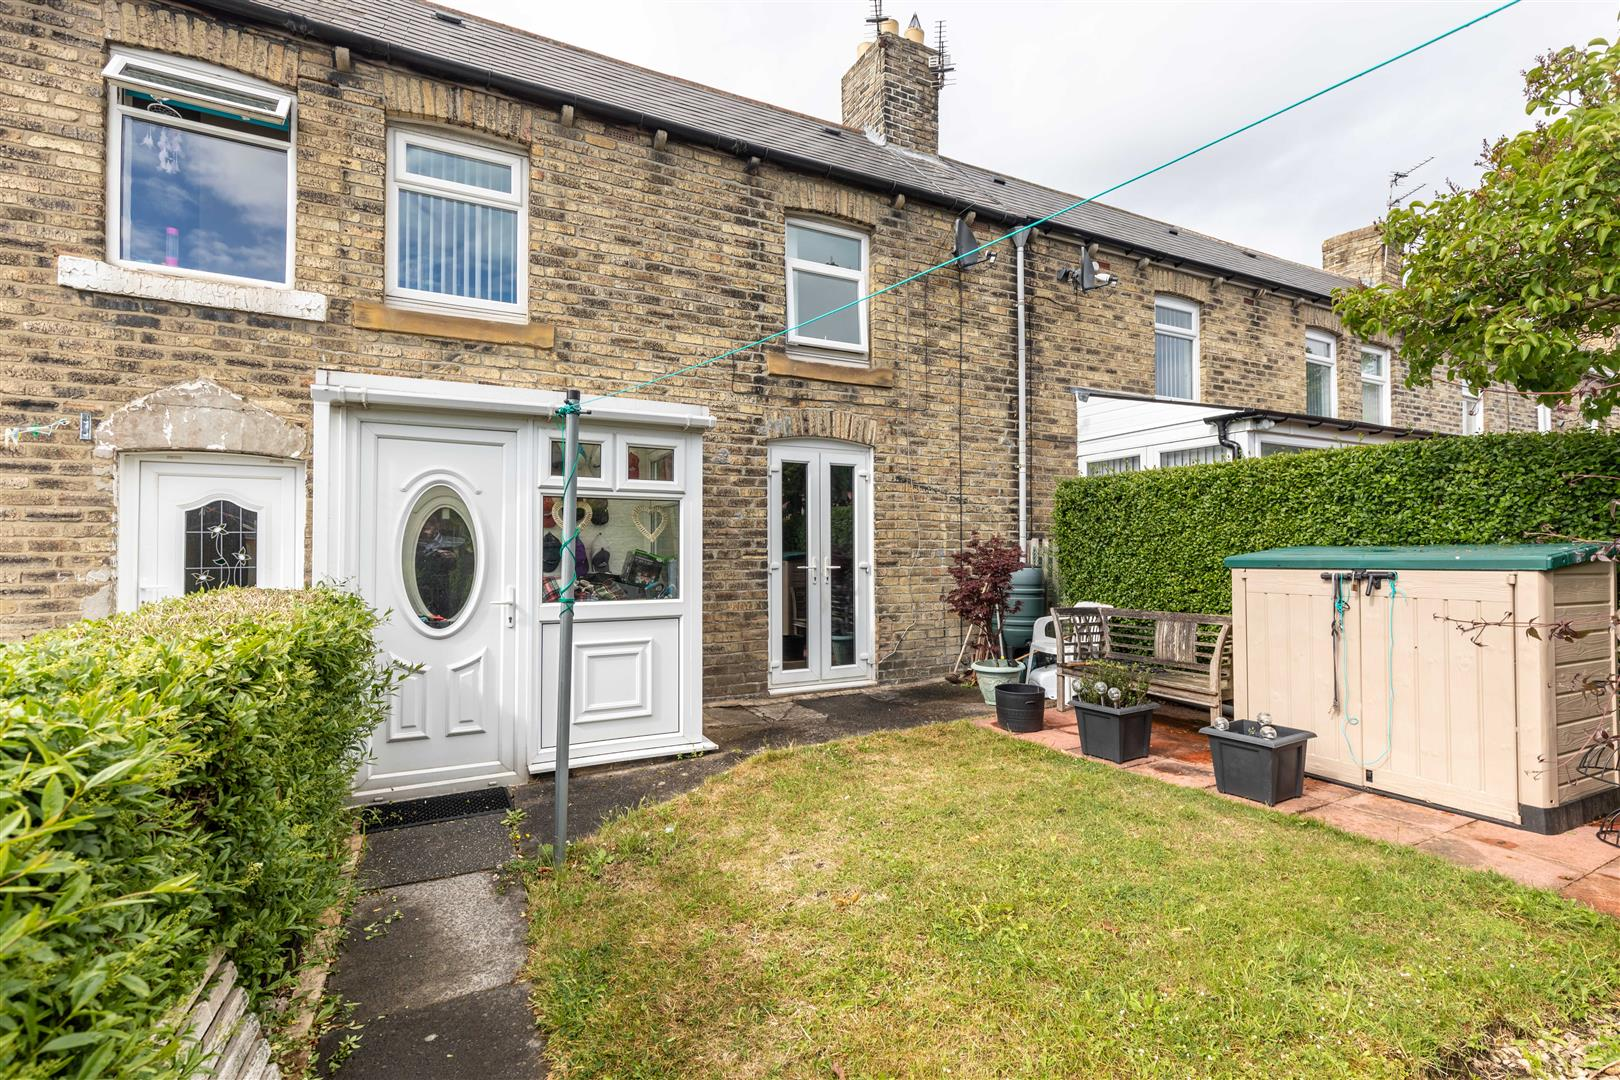 3 bed terraced house for sale in Ashington, NE63 8HX  - Property Image 1